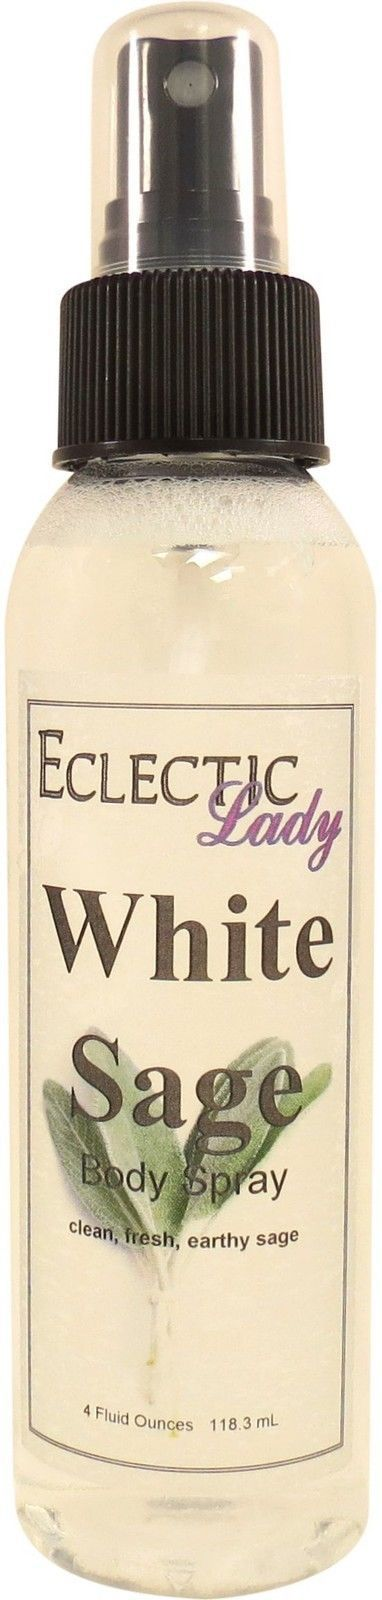 White Sage Body Spray